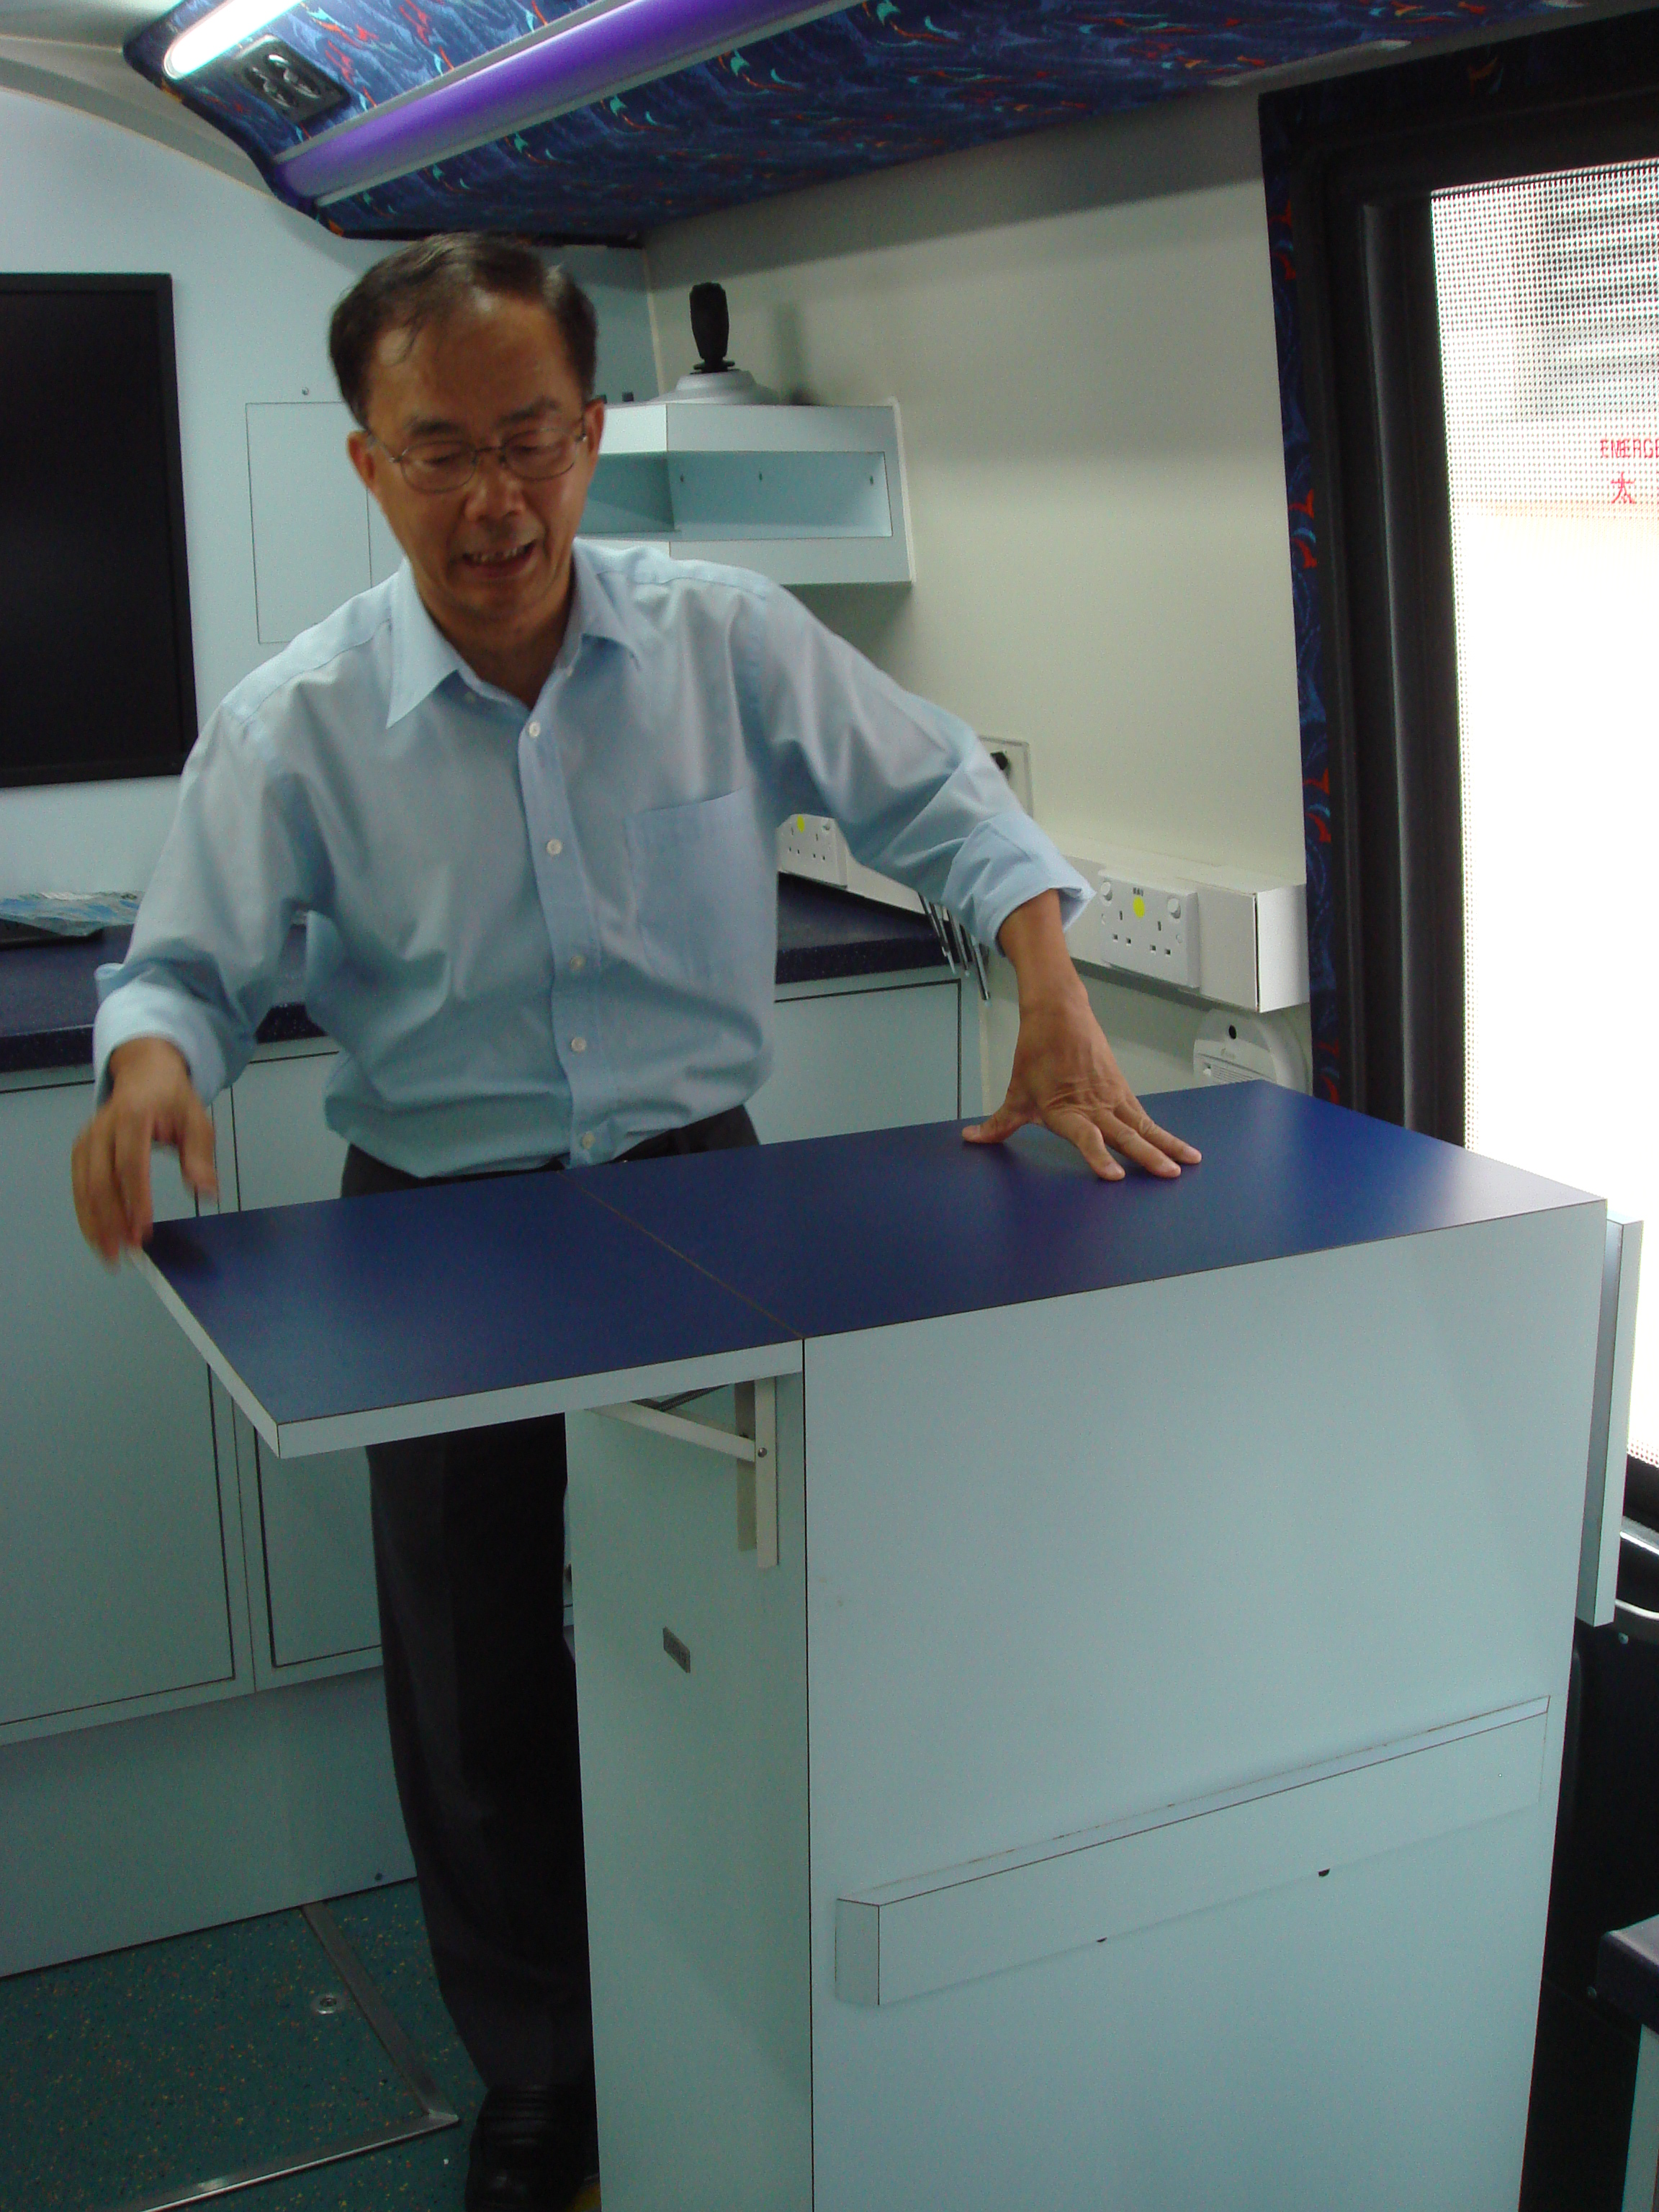 Dr. William Mak and his teaching podium.